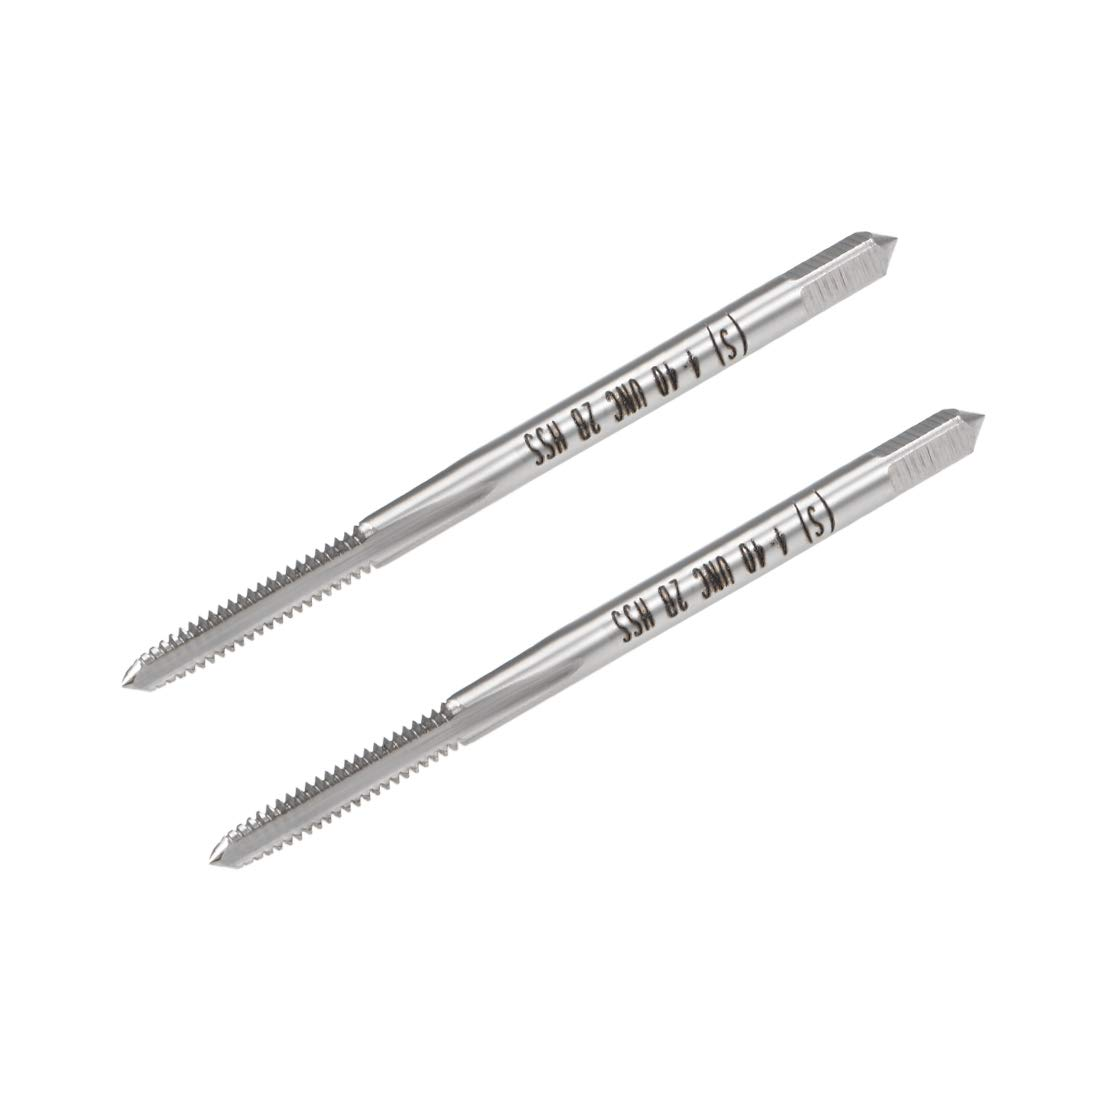 uxcell Machine Tap 5-40UNC Thread Pitch 2A Class 3 Flutes High Speed Steel